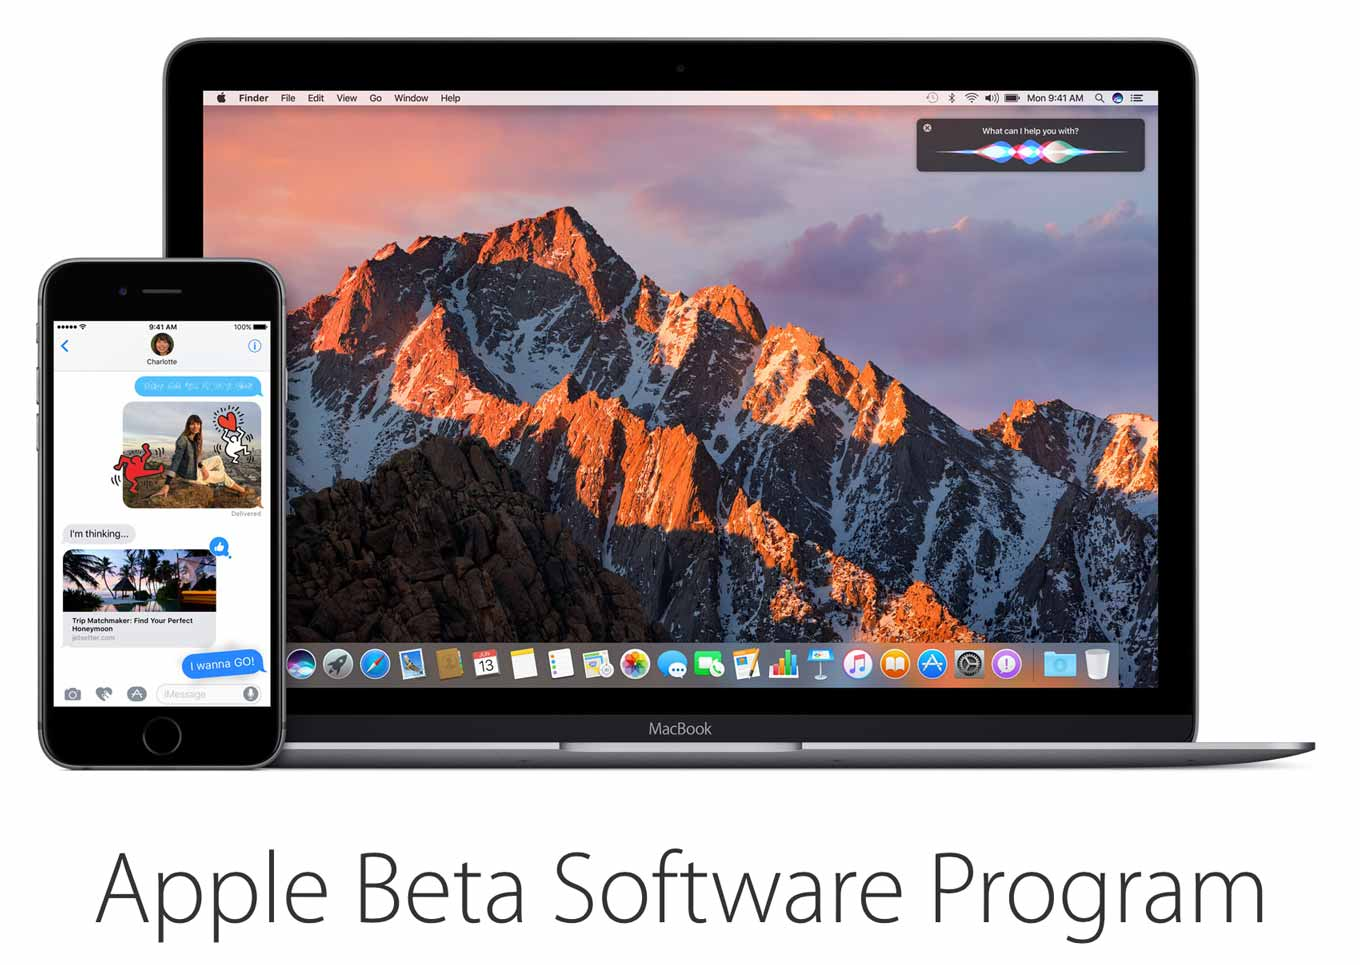 Applebetasoftwareprogram